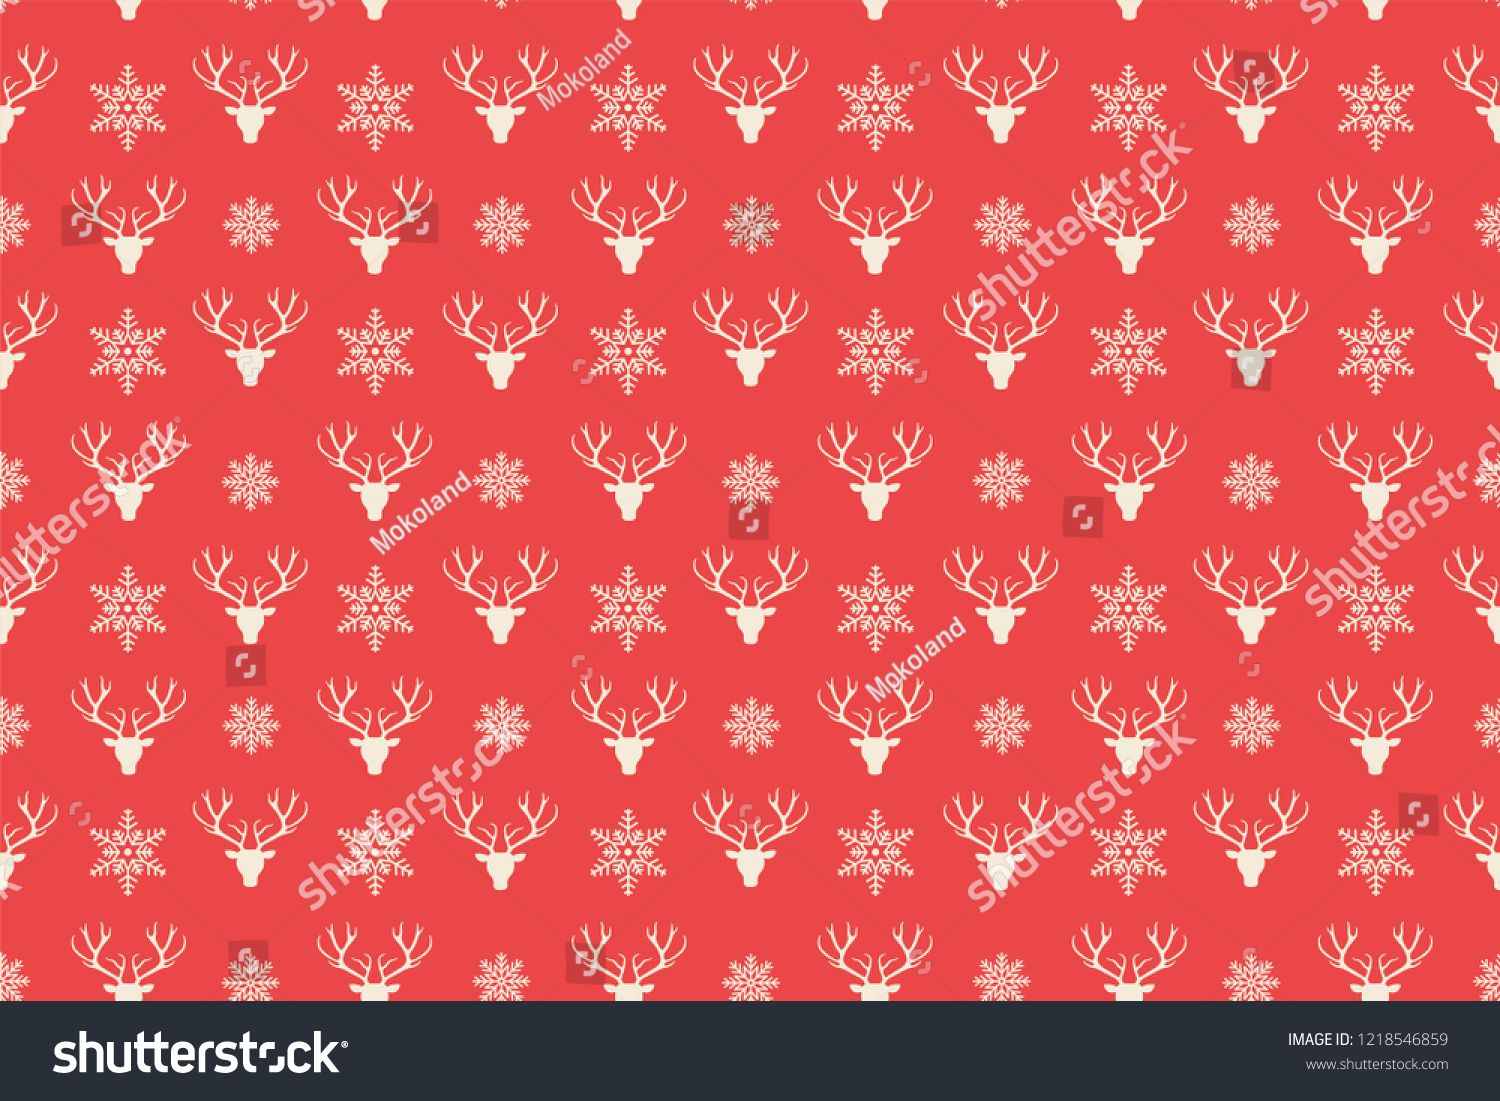 Merry Christmas Pattern Seamless Reindeer Head Background Red Xmas Wallpaper Endless Texture For Gift Christmas Pattern Xmas Wallpaper Super Healthy Recipes